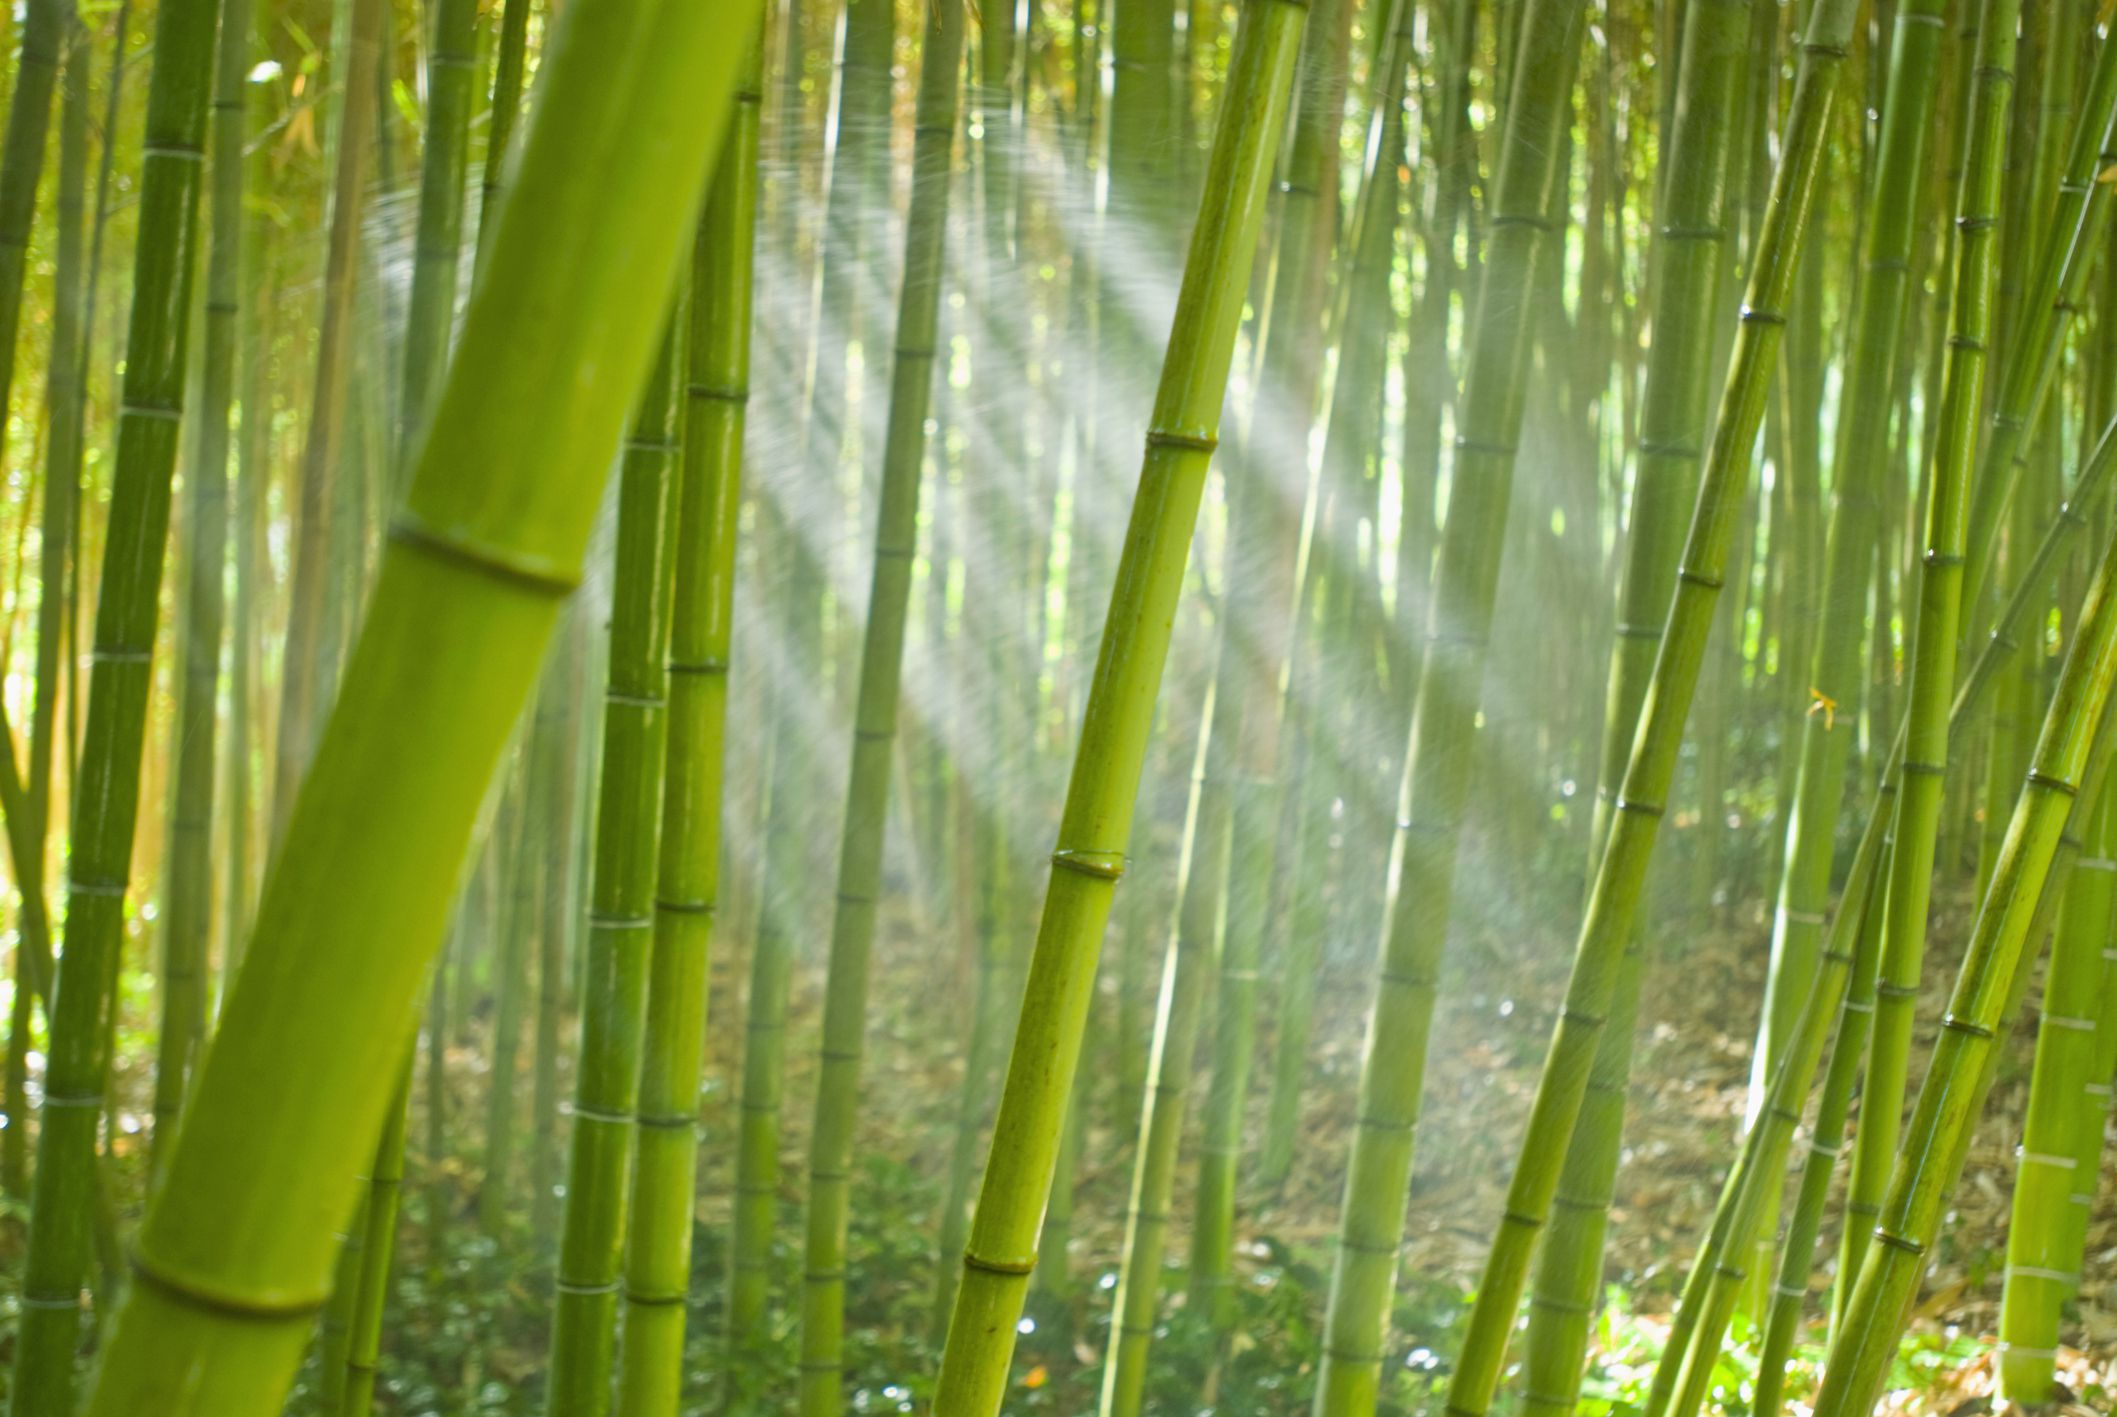 Bamboo Removal Eradicating Bamboo Without Herbicides